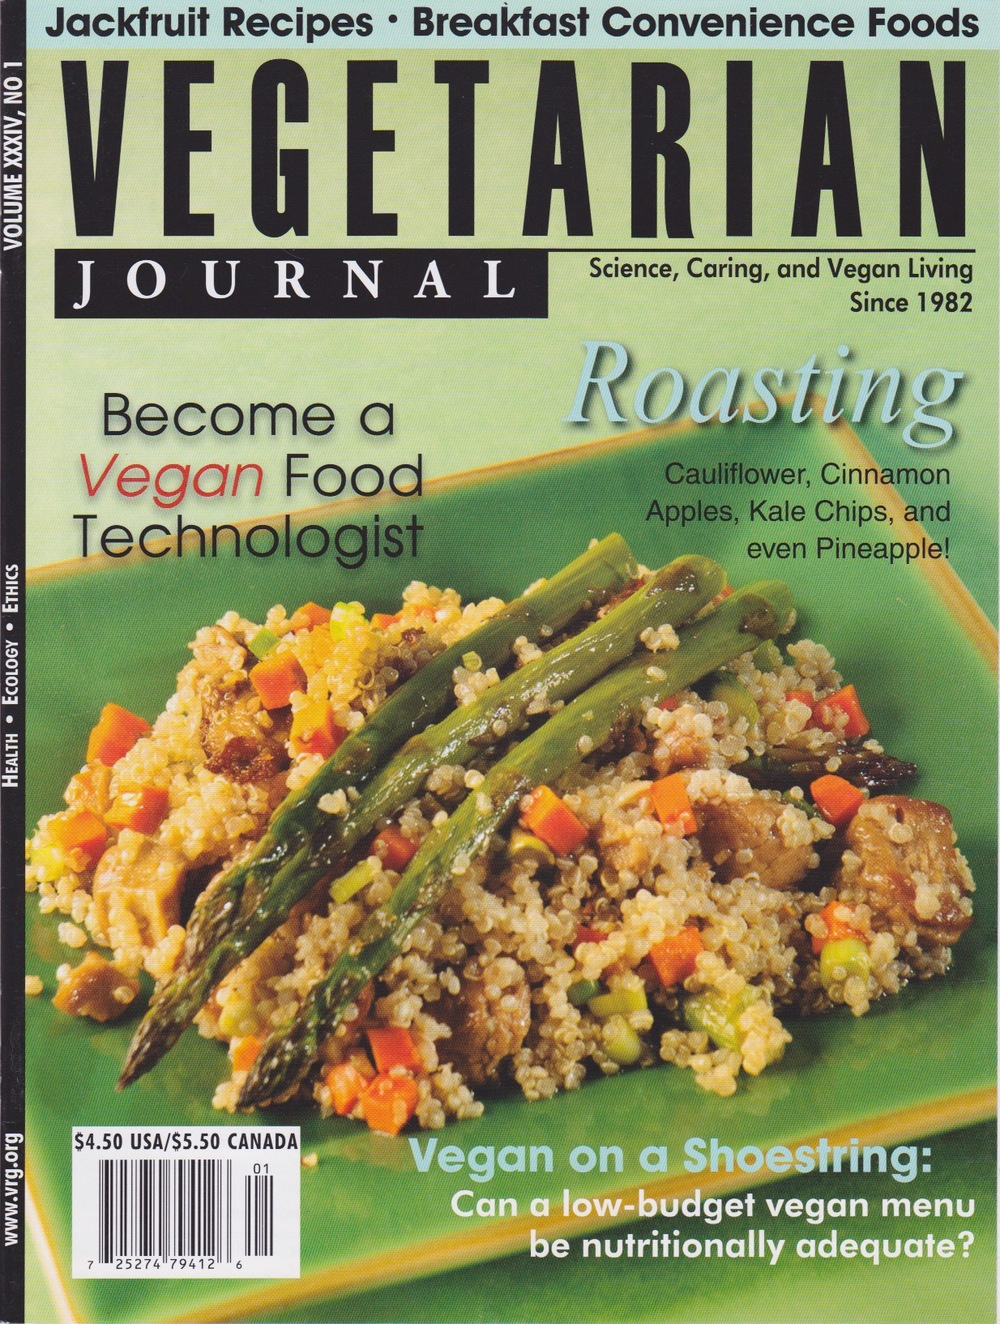 VEG_Journal cover.jpeg